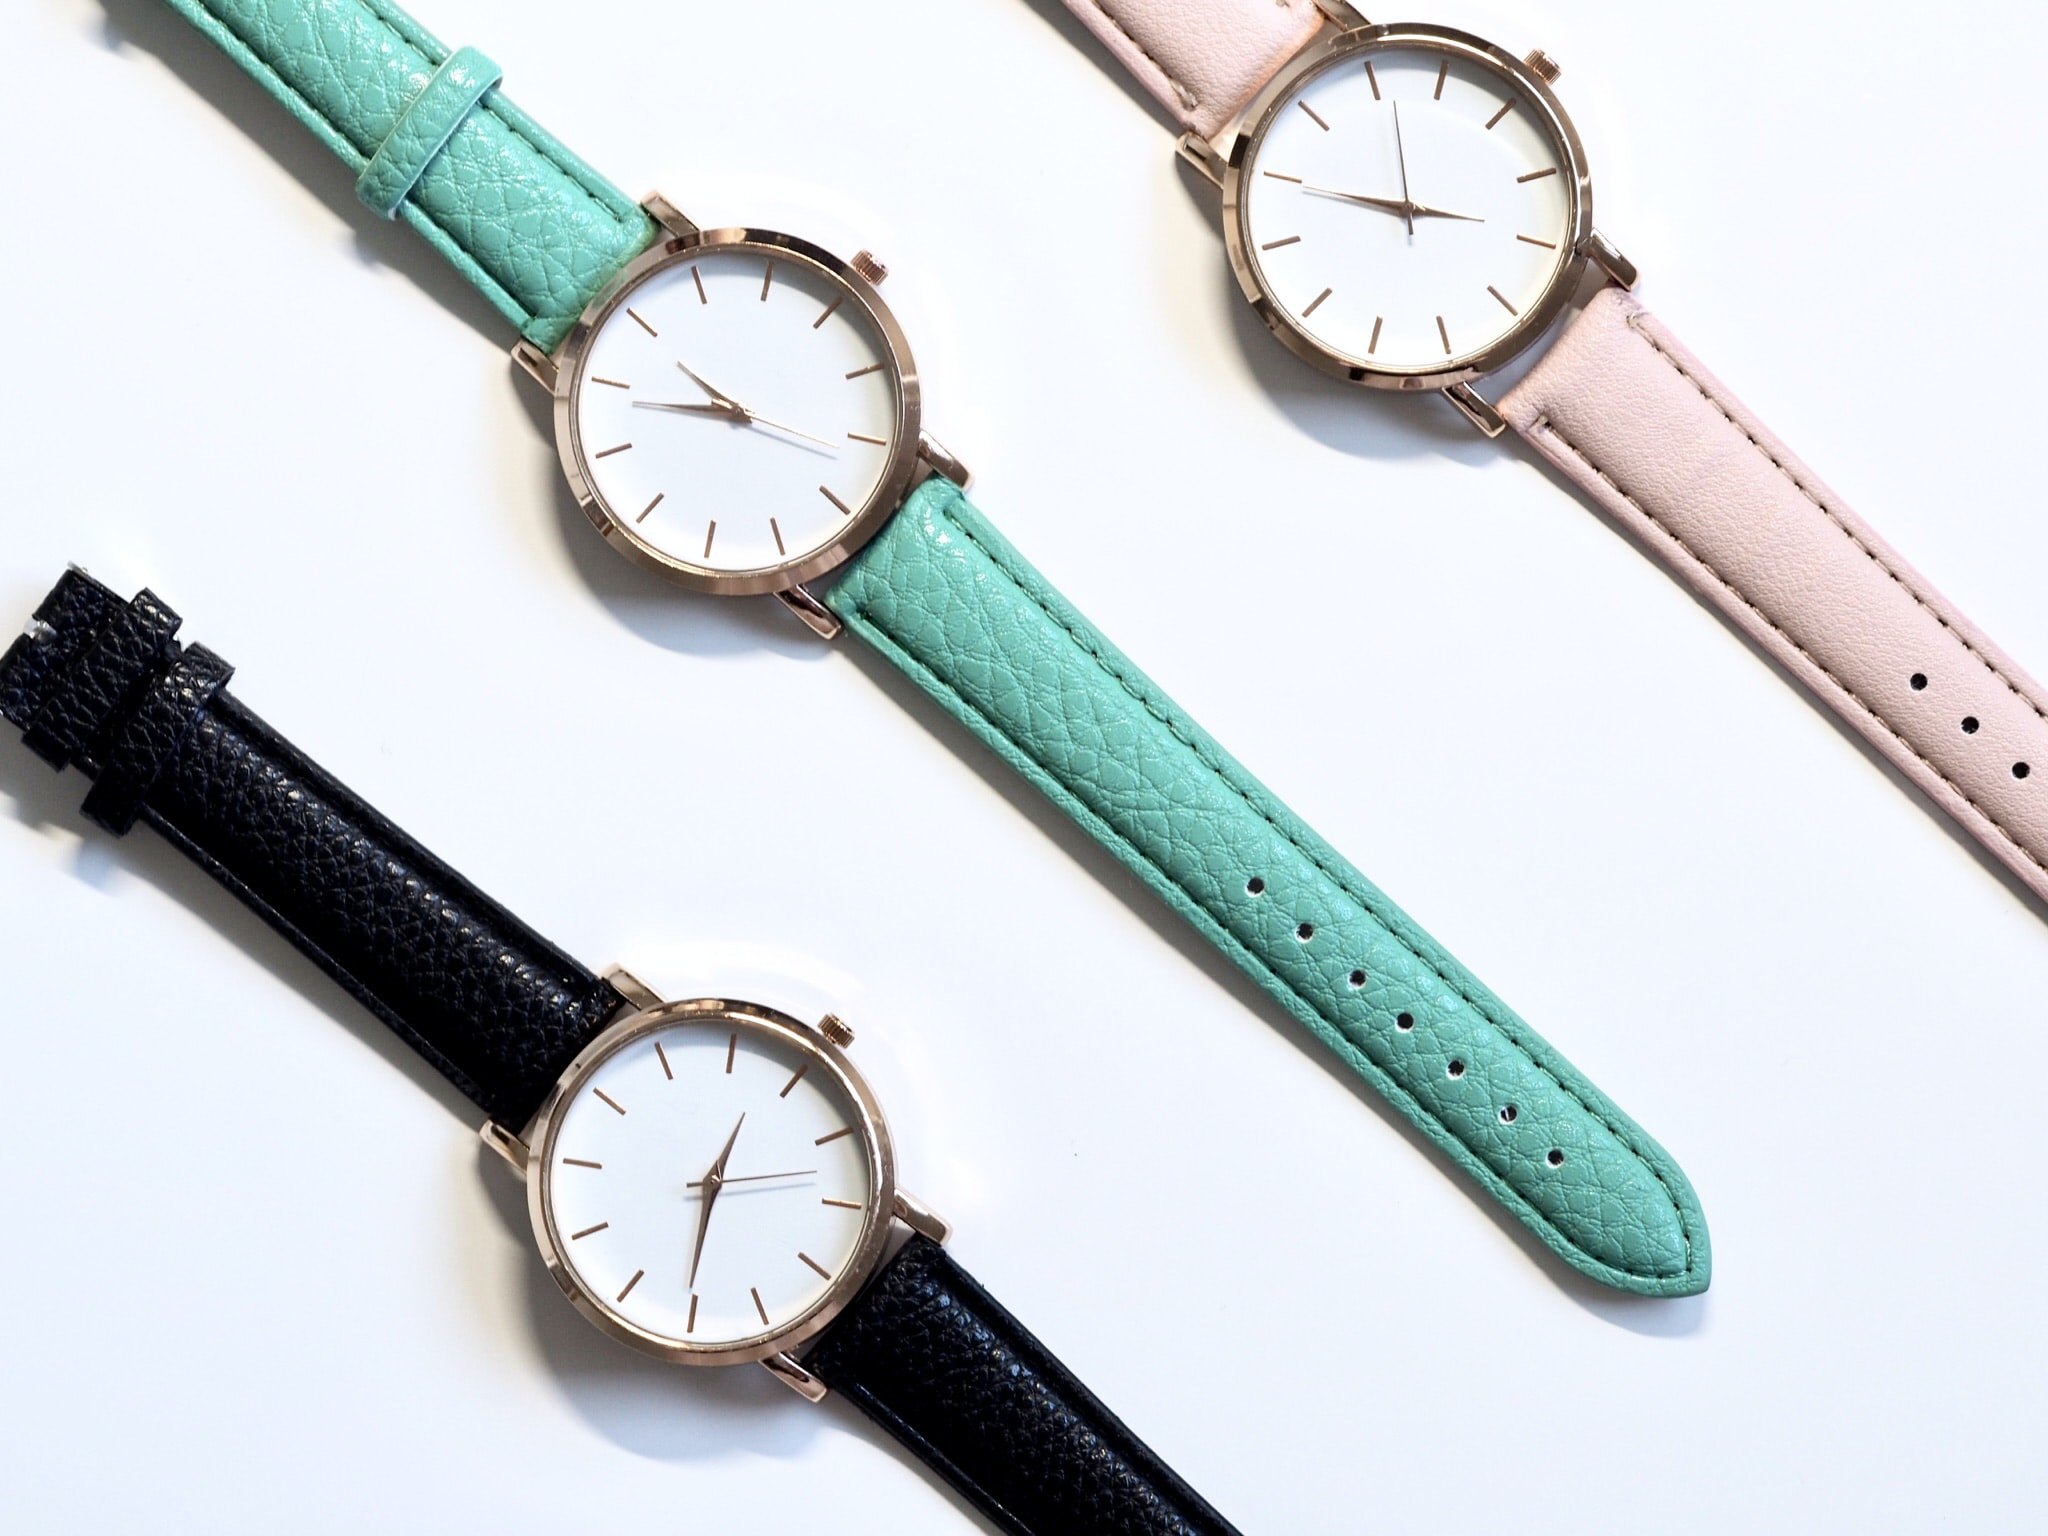 three round assorted-color analog watches with leather straps